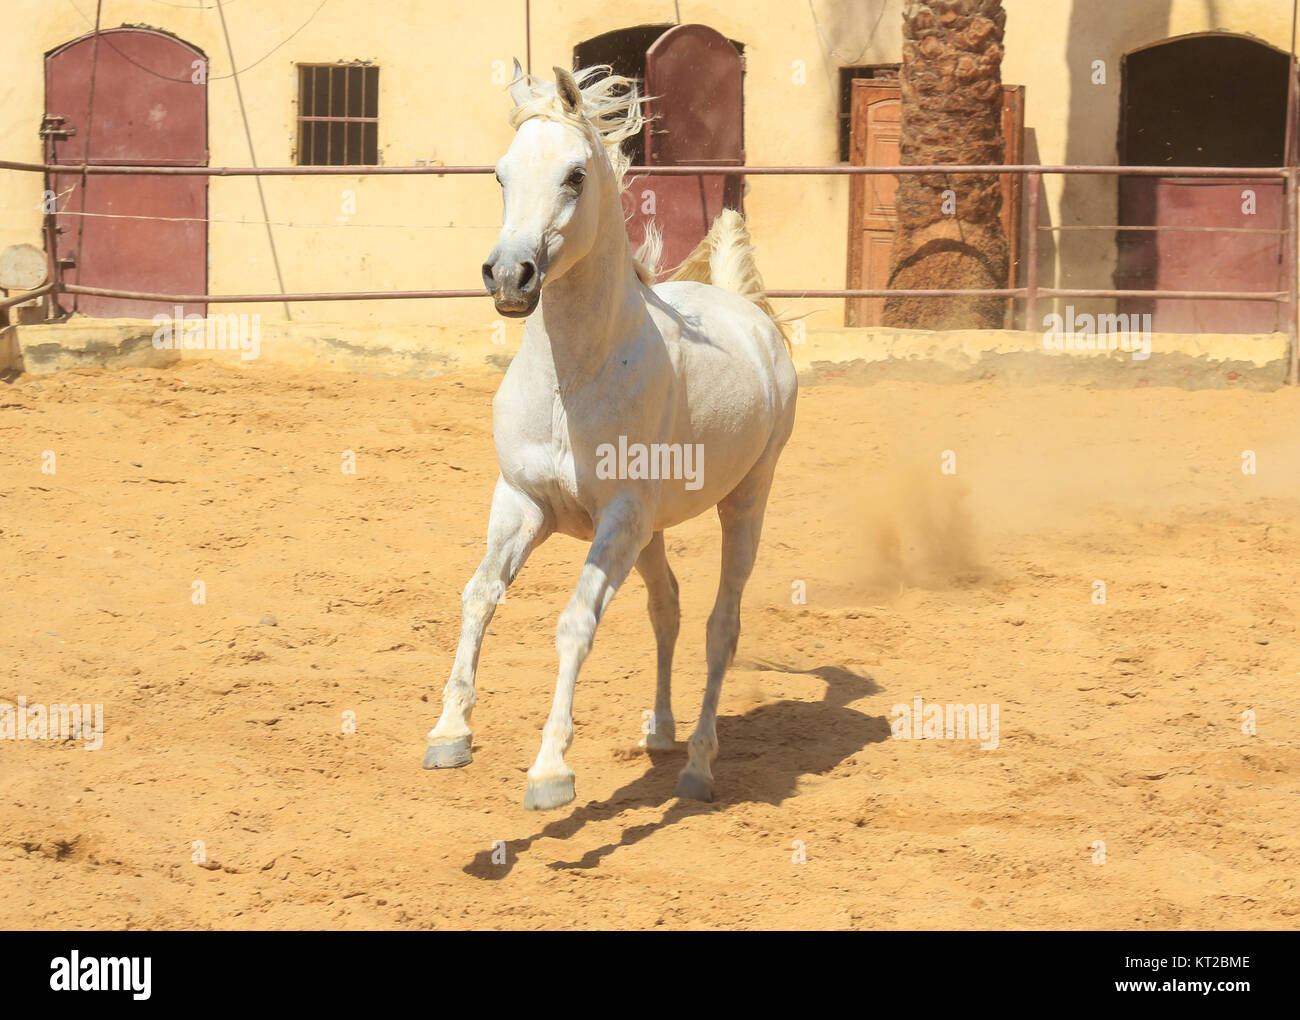 Arabian Horse in a sandy ranch/ featuring Arabian Horse in a sandy field in sunny day Stock Photo